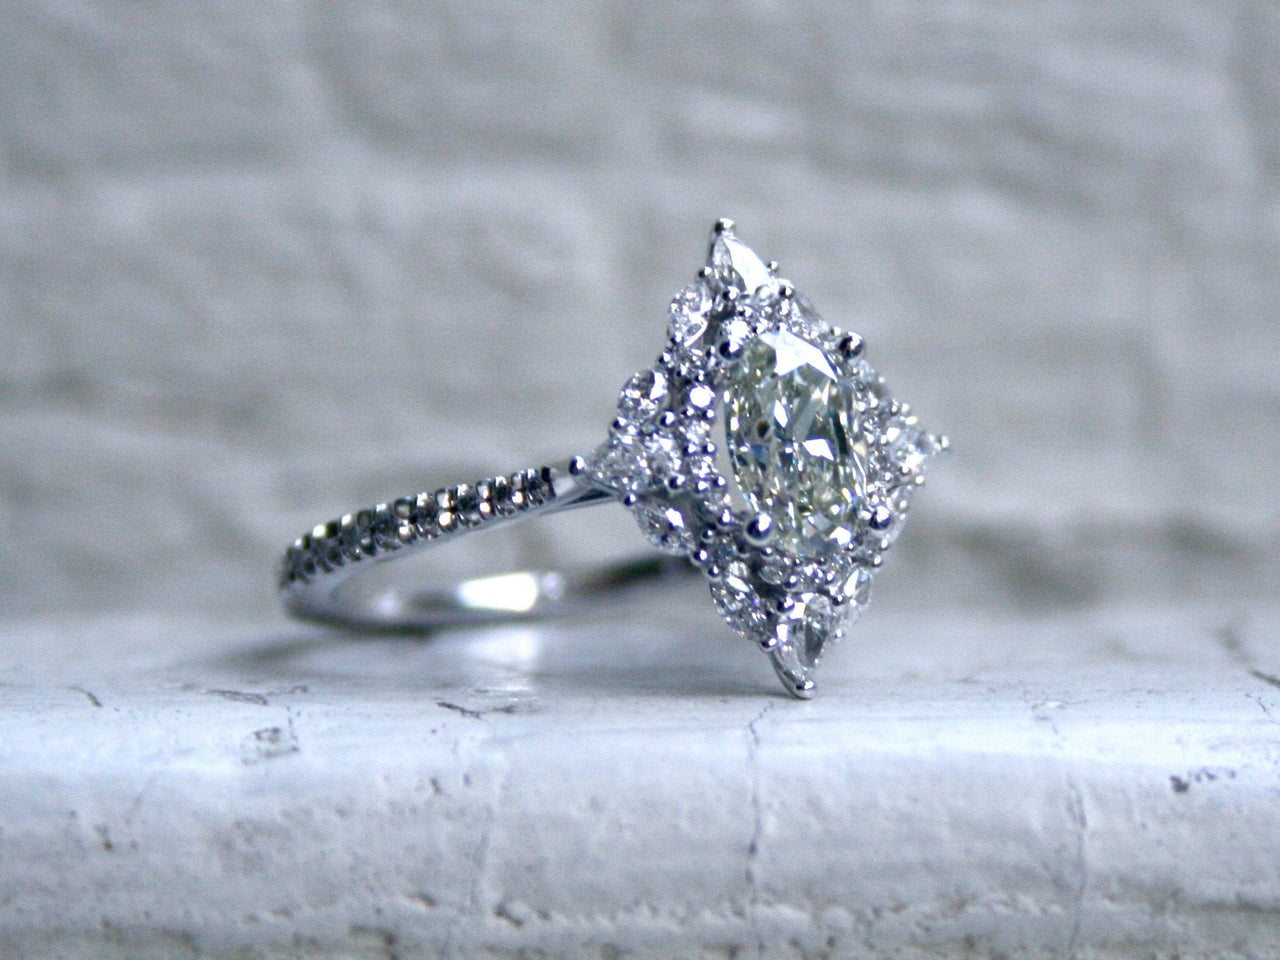 Stunning 14K White Gold Halo Oval Diamond Cluster Ring Engagement Ring Set - 1.75ct.